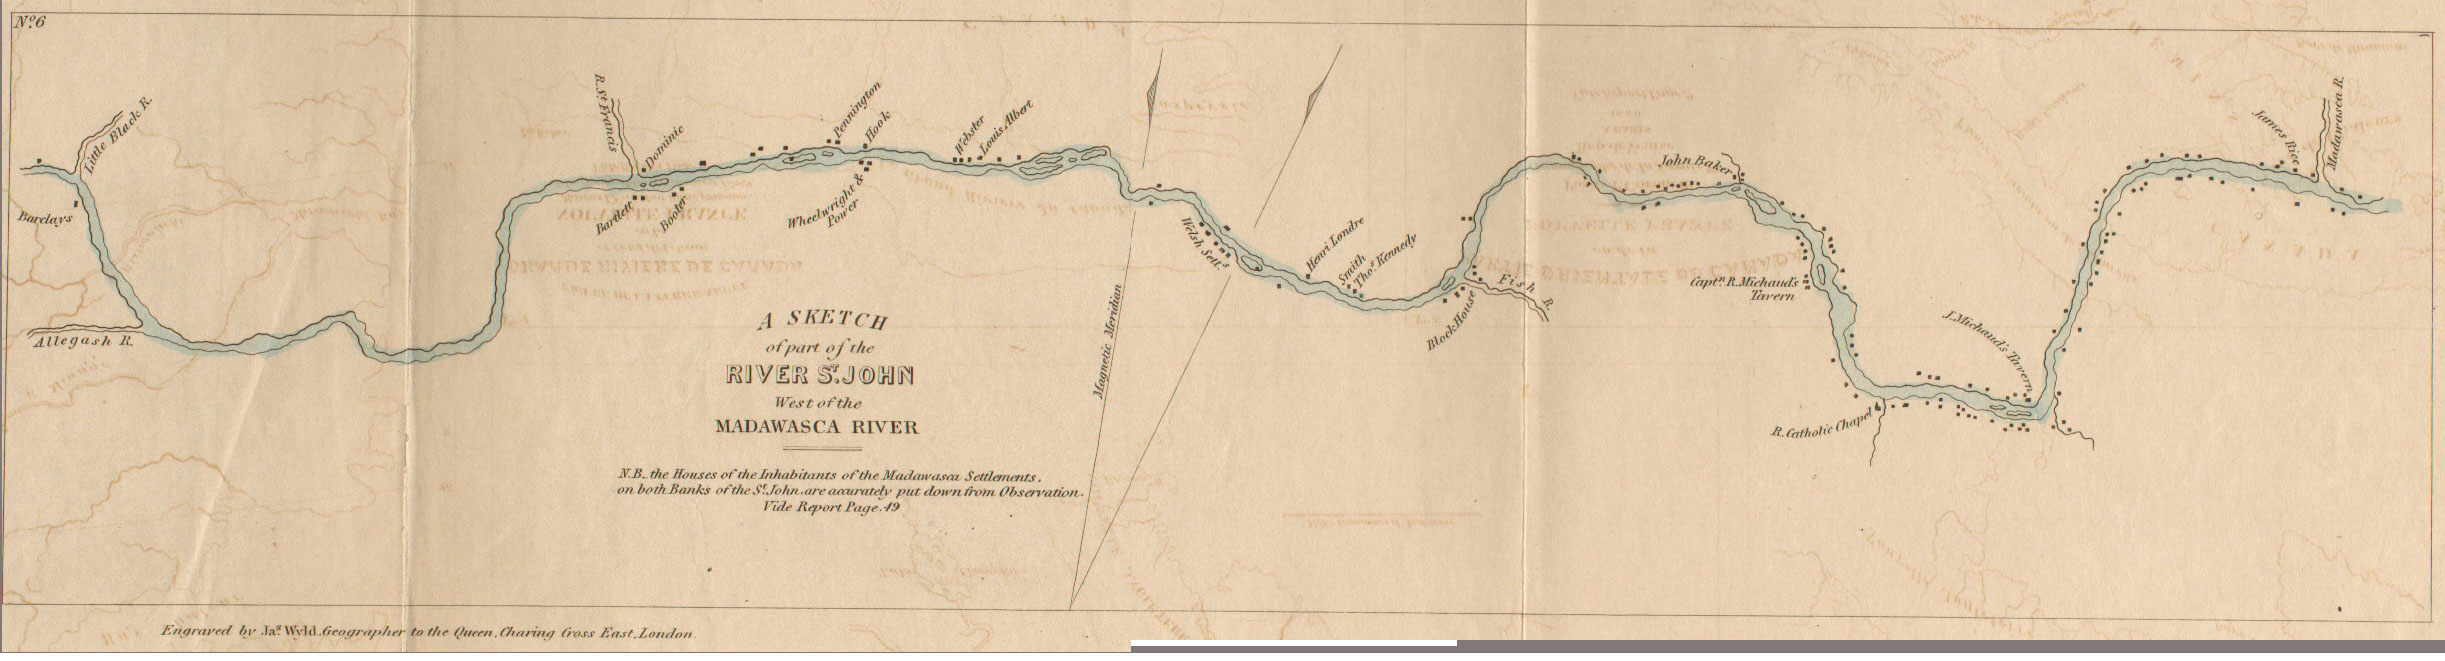 map of settlements along the Upper St.John from the Madawaska River to past the St. Francis; 1840 map